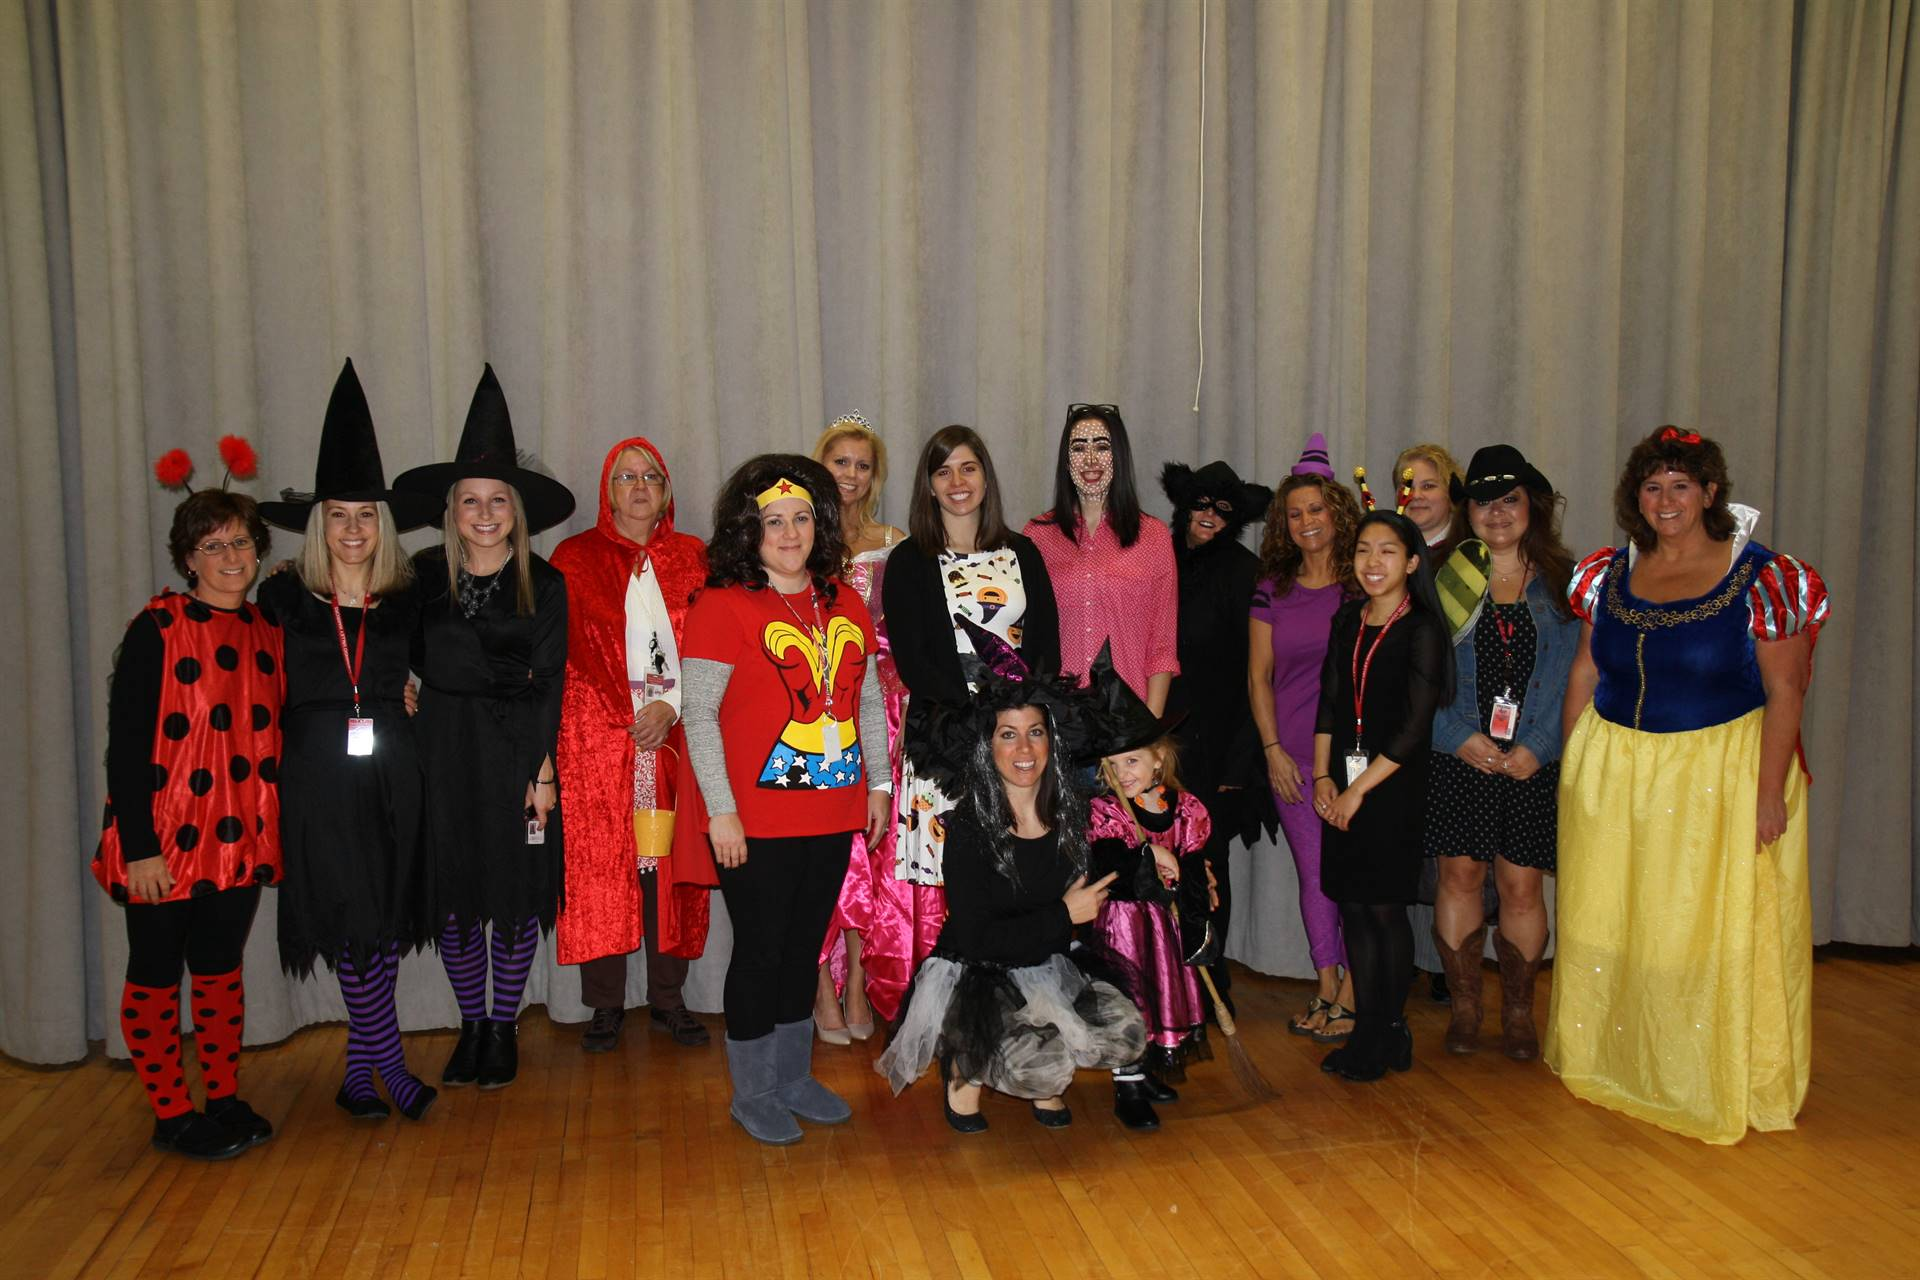 chenango bridge staff dressed up for halloween